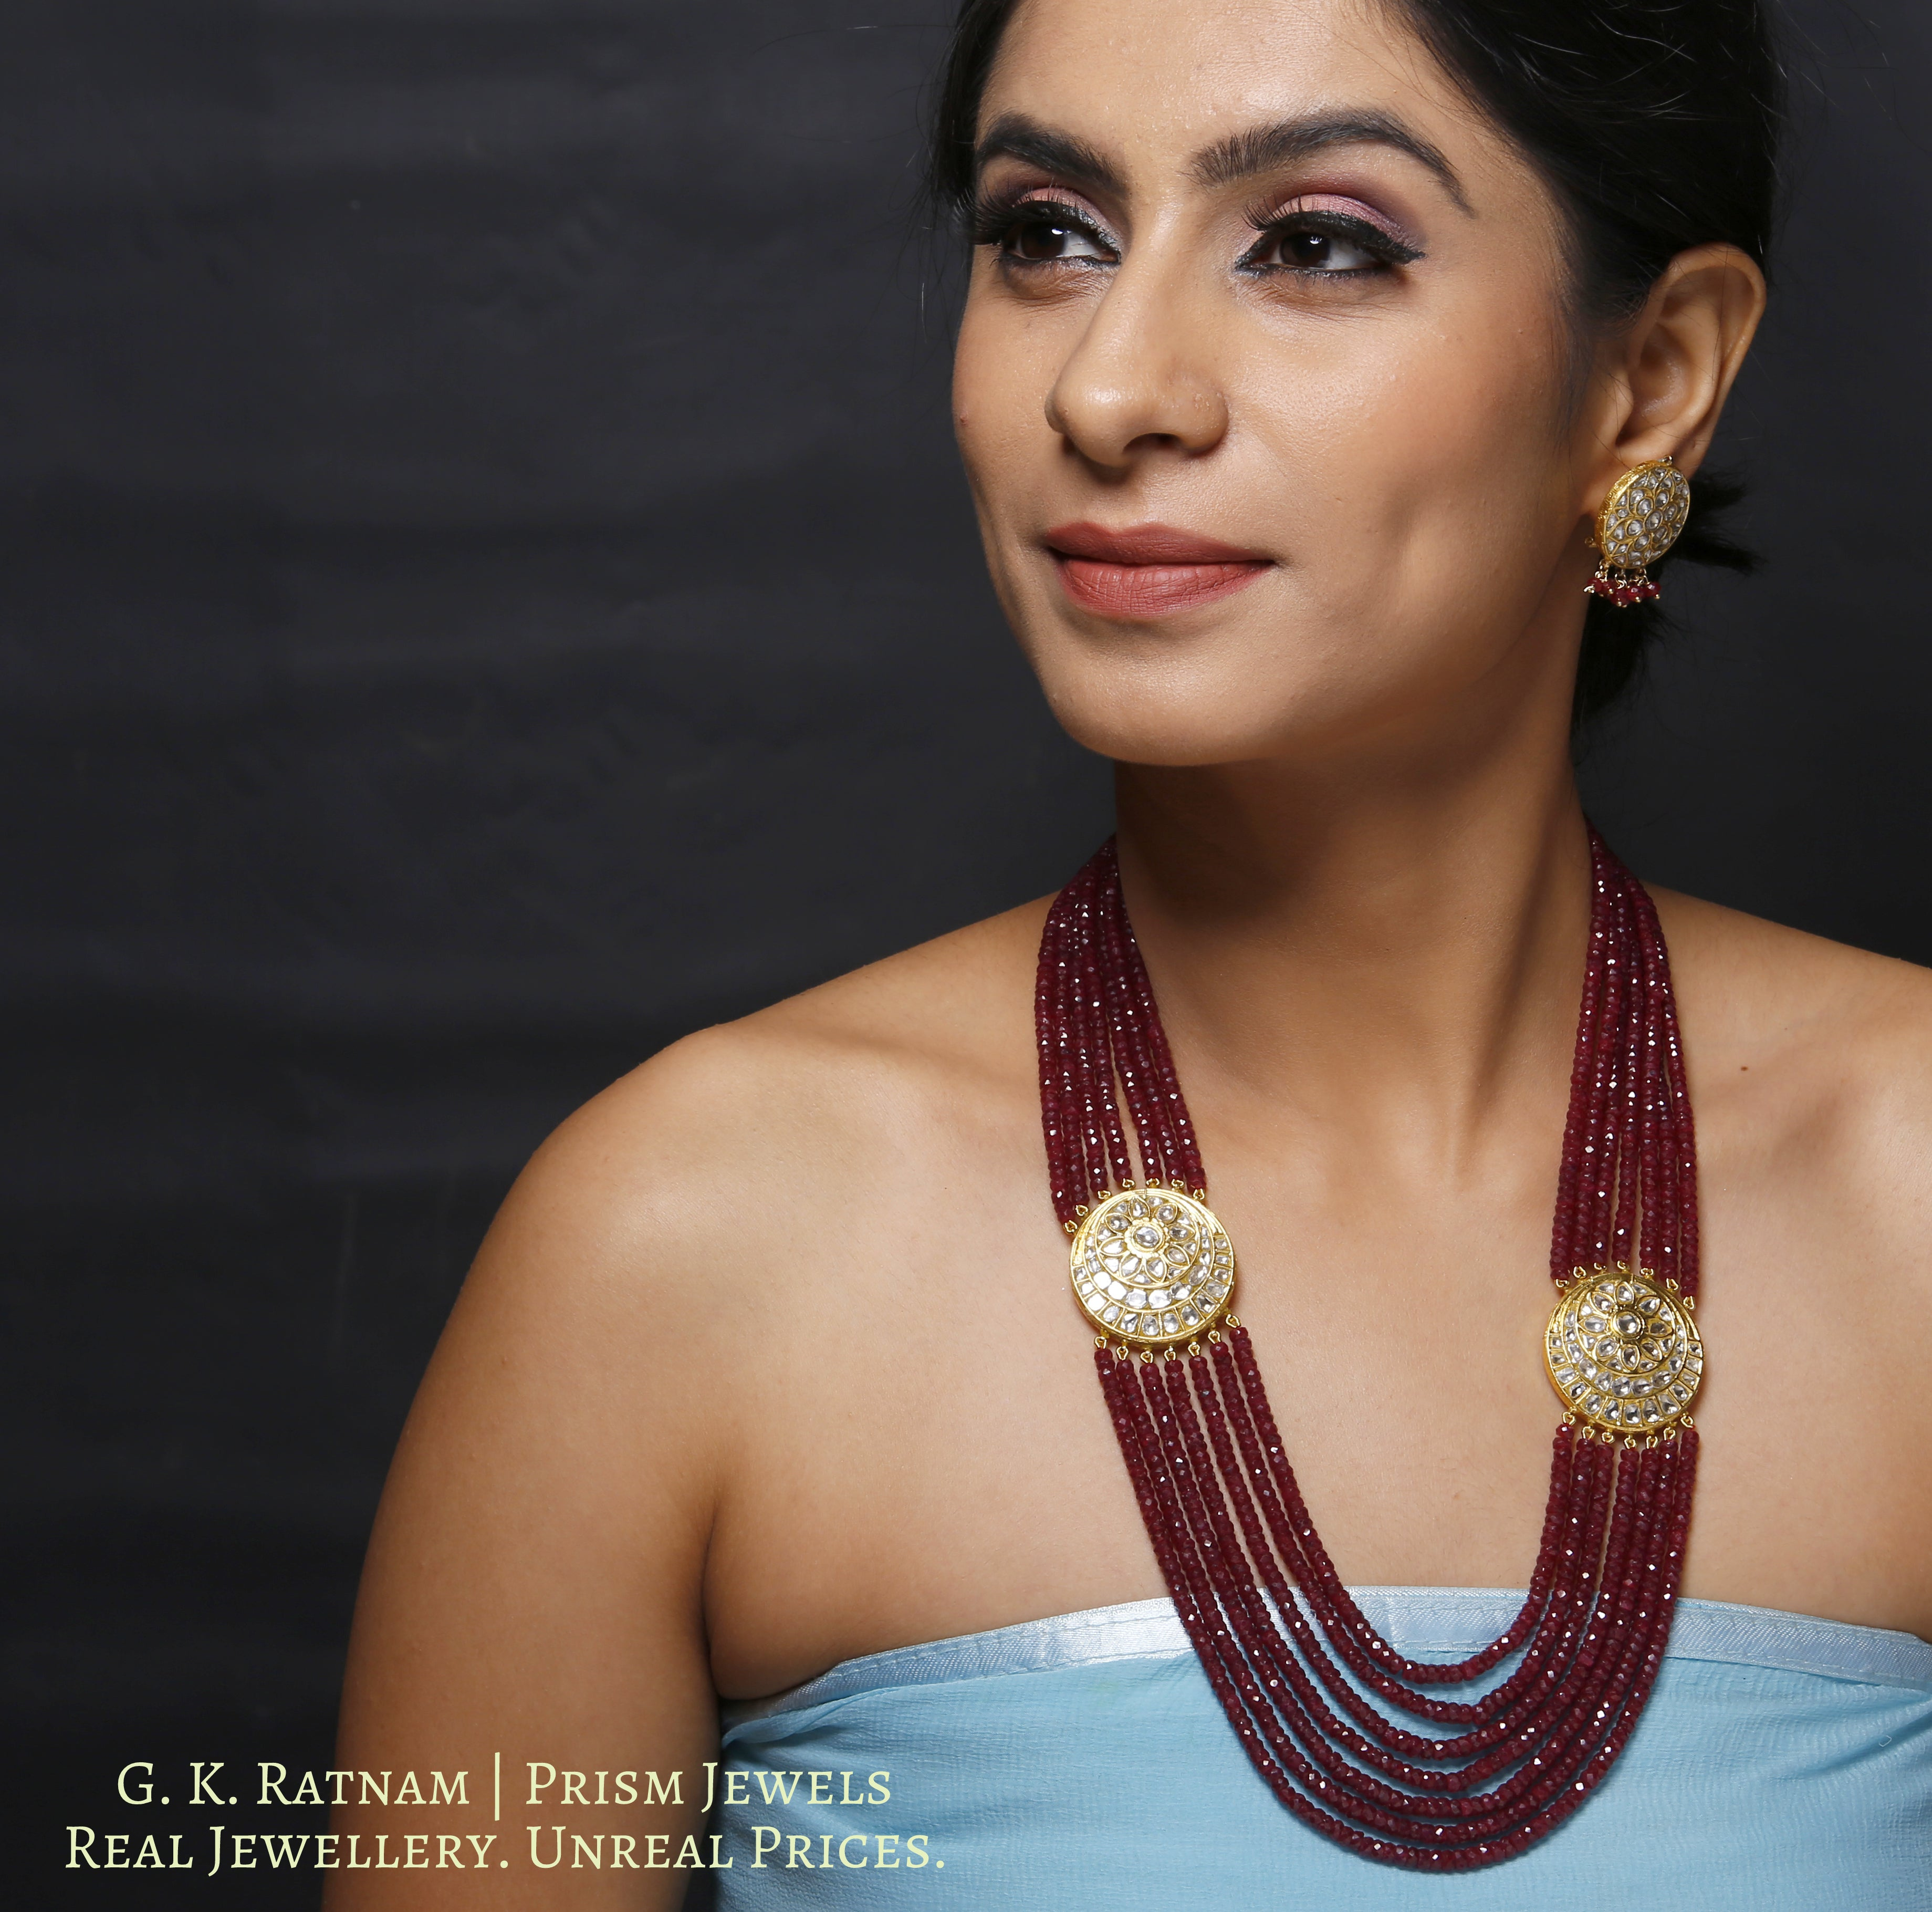 23k Gold and Diamond Polki Broach Necklace Set with Ruby cut beads - gold diamond polki kundan meena jadau jewellery